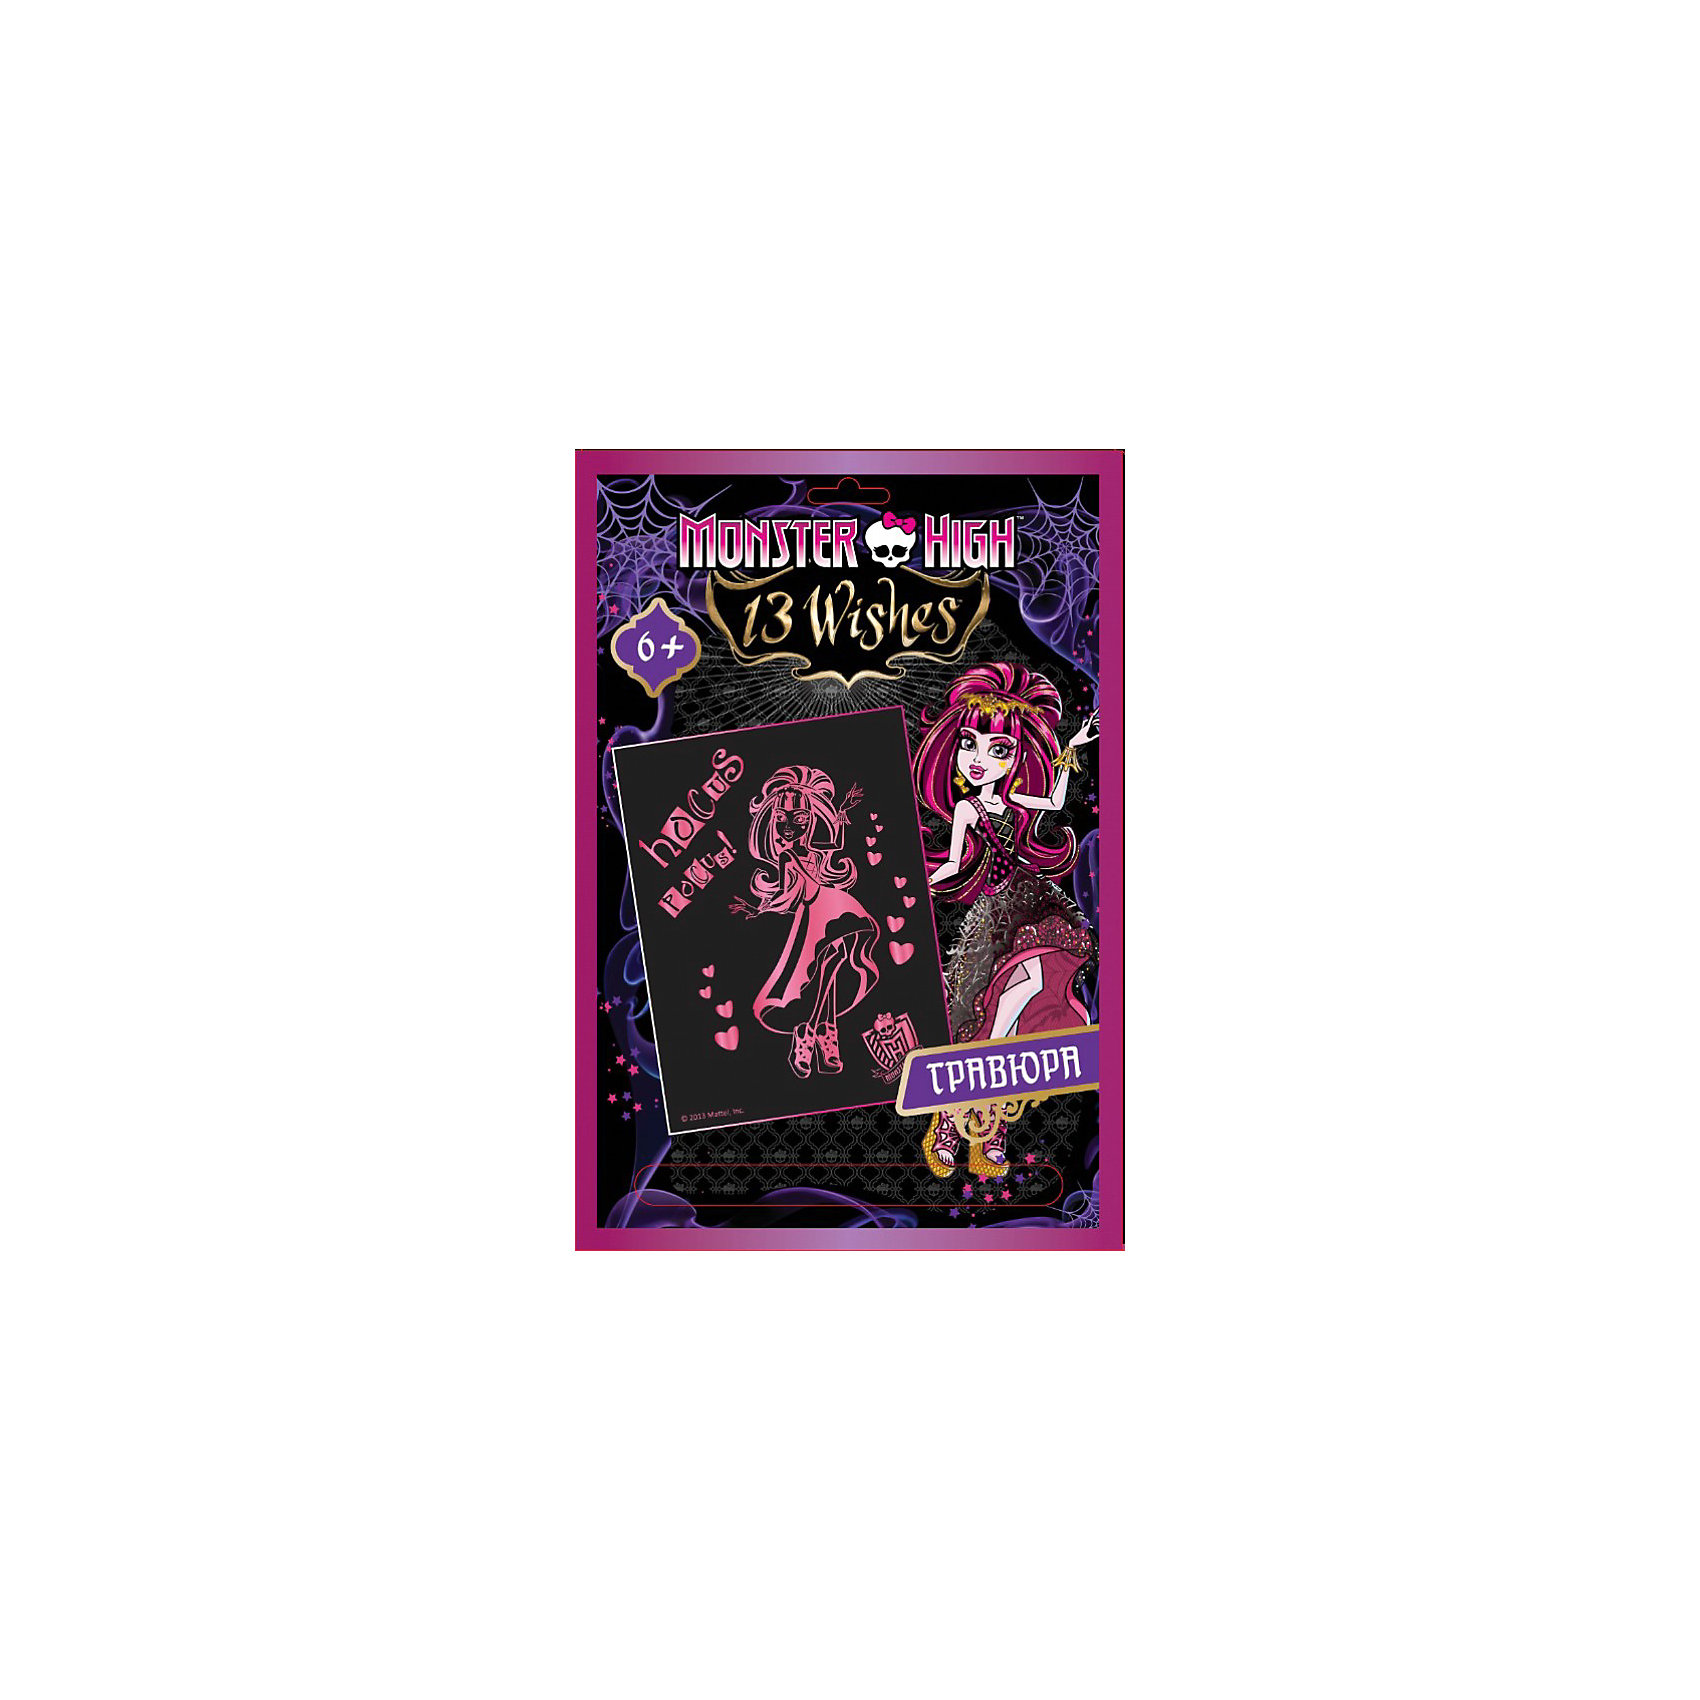 CENTRUM Гравюра Дракула, Monster High, CENTRUM centrum сумка monster high 27 24 3 см